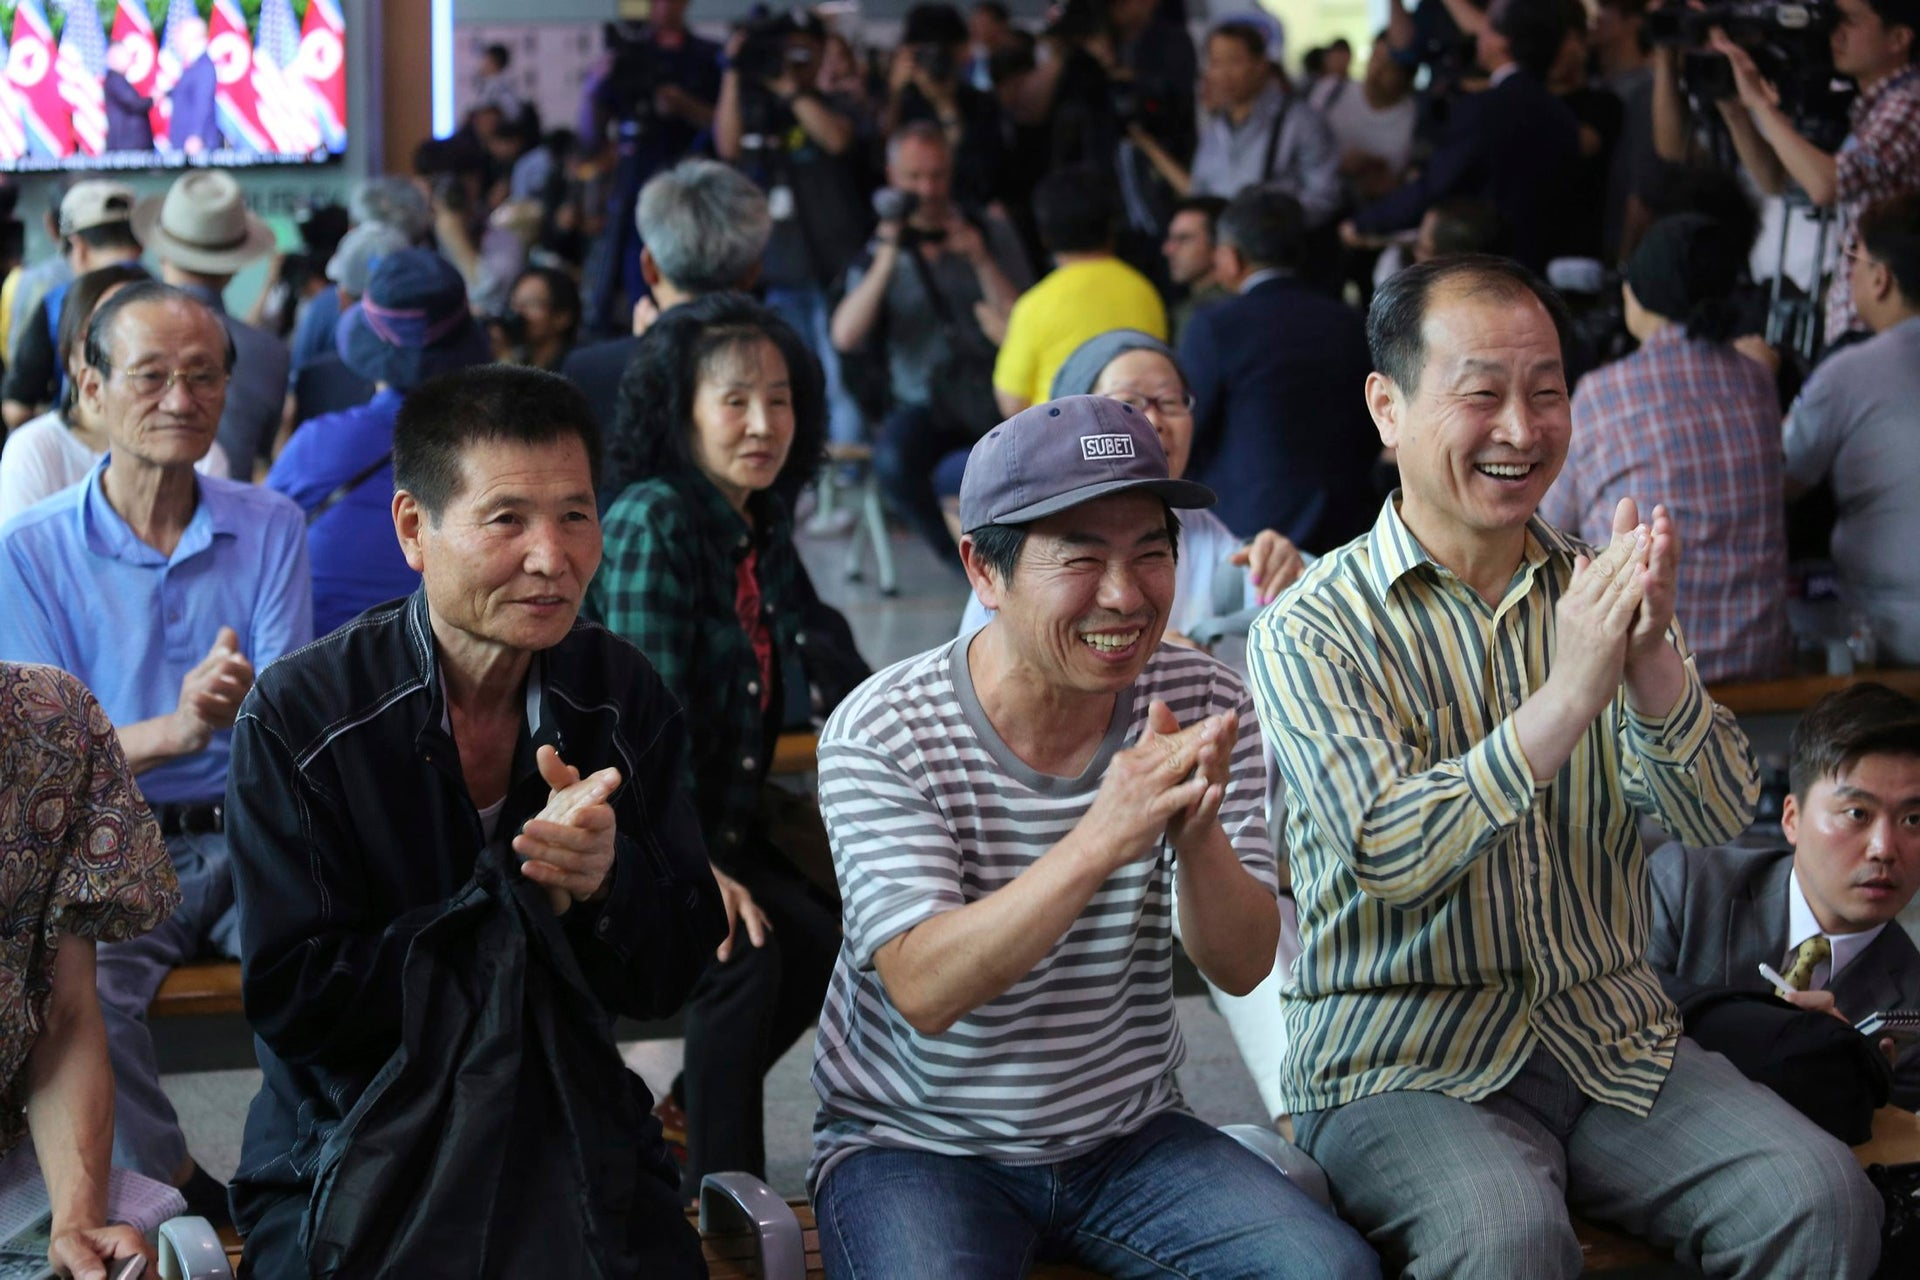 Smiles all around: people watch the summit from Seoul, South Korea, June 12 2018